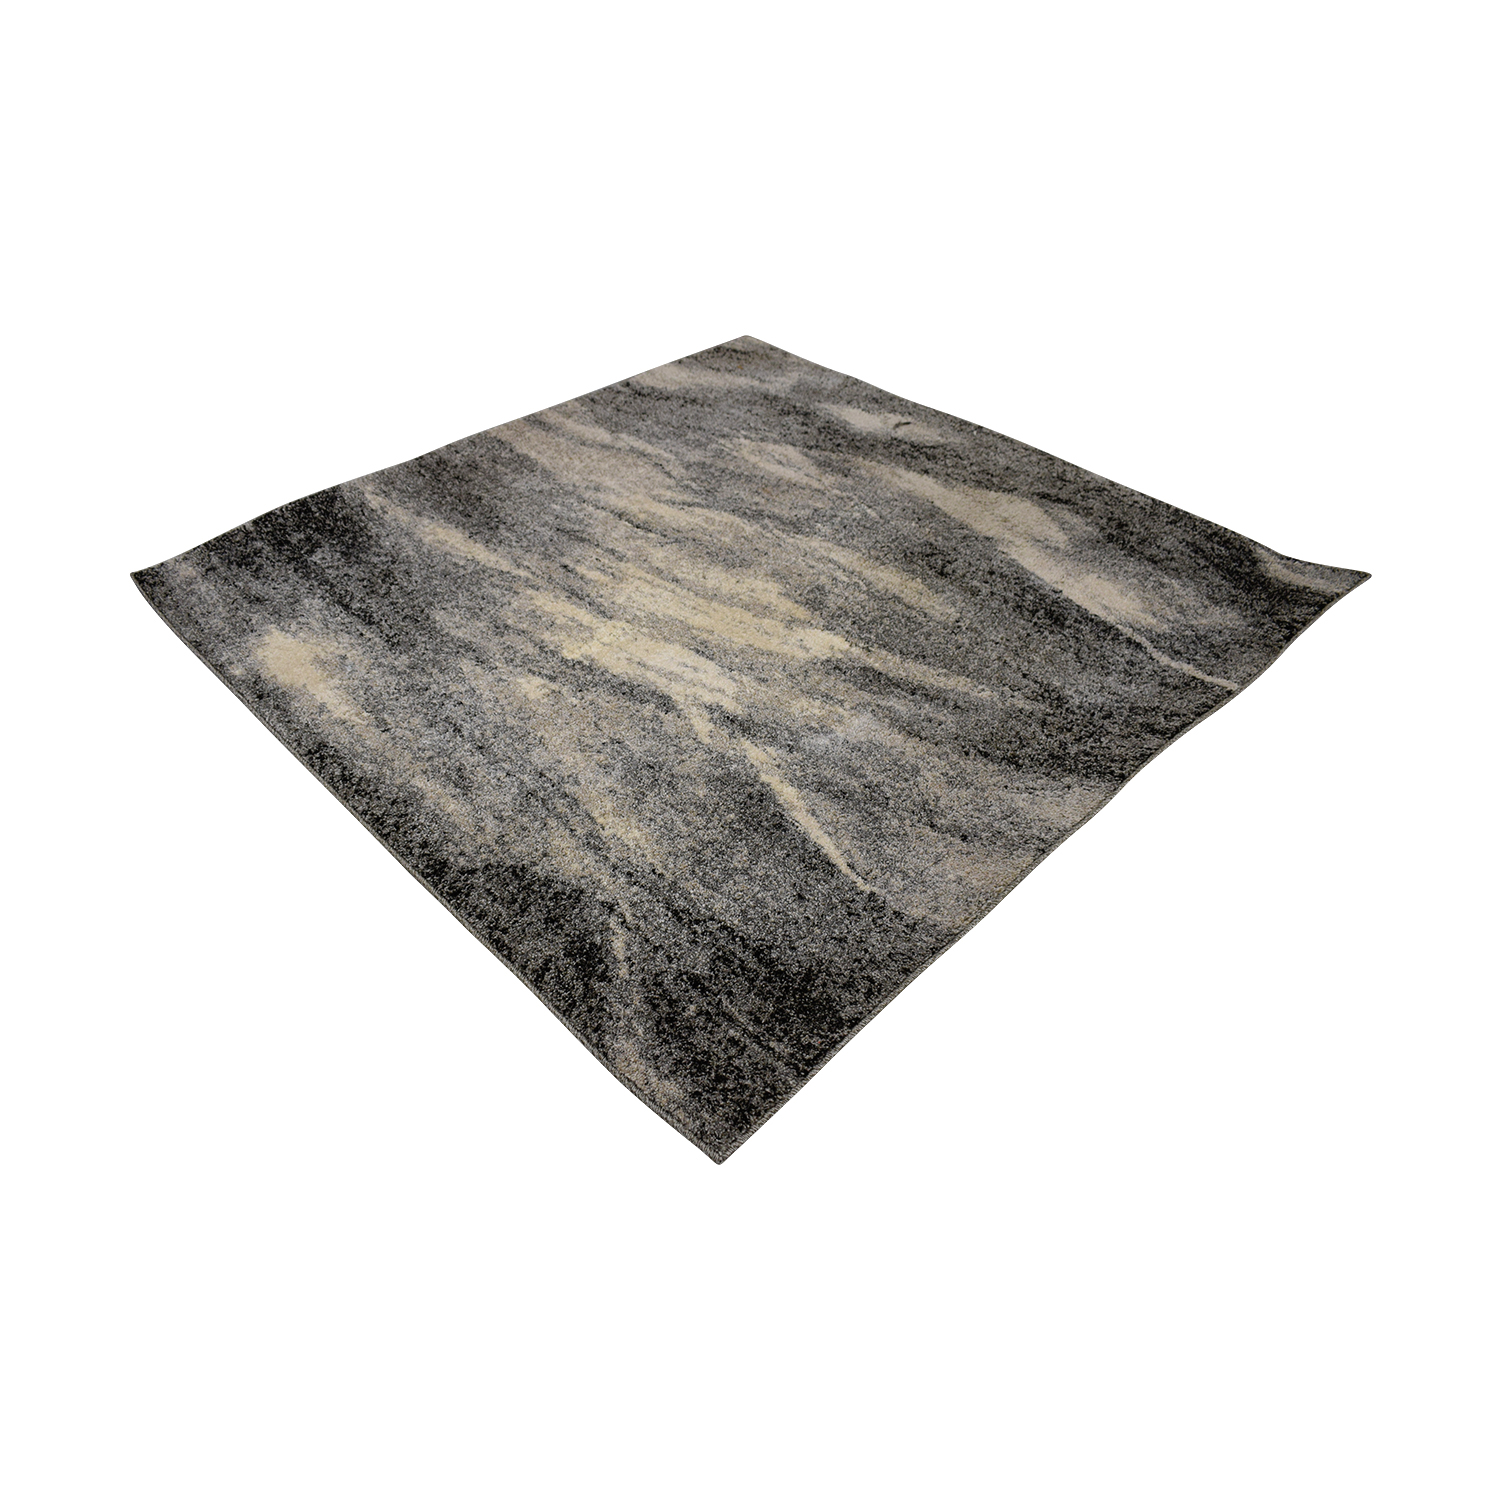 Safavieh Safavieh Grey White and Black Rug discount